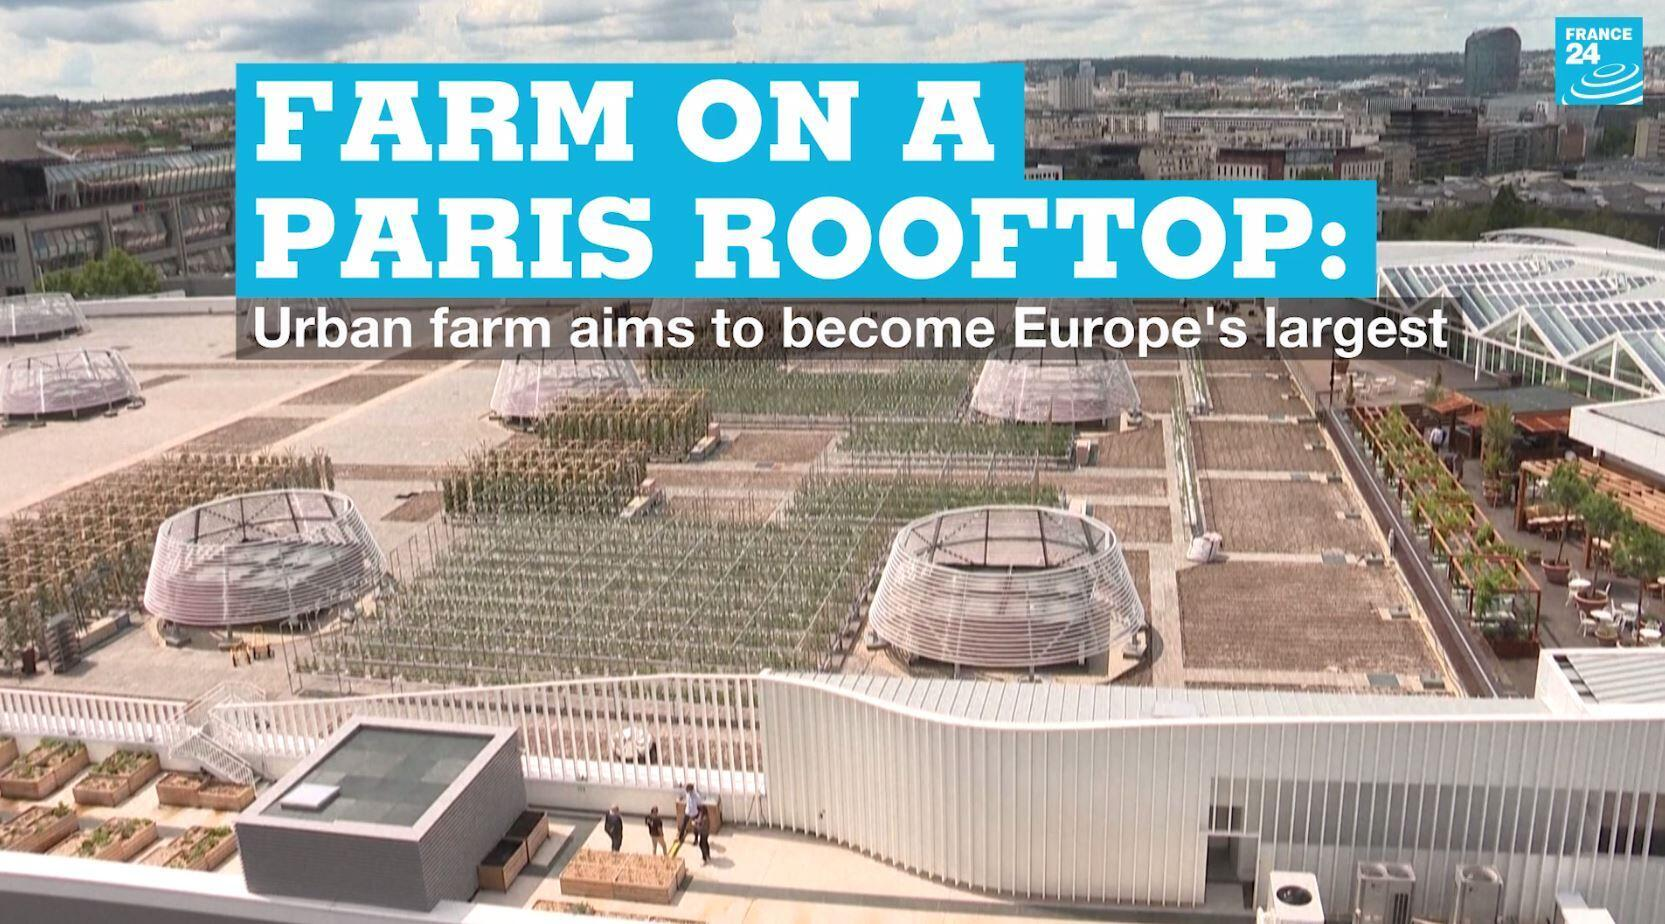 A new urban farming project in Paris hopes to become Europe's biggest by 2022.